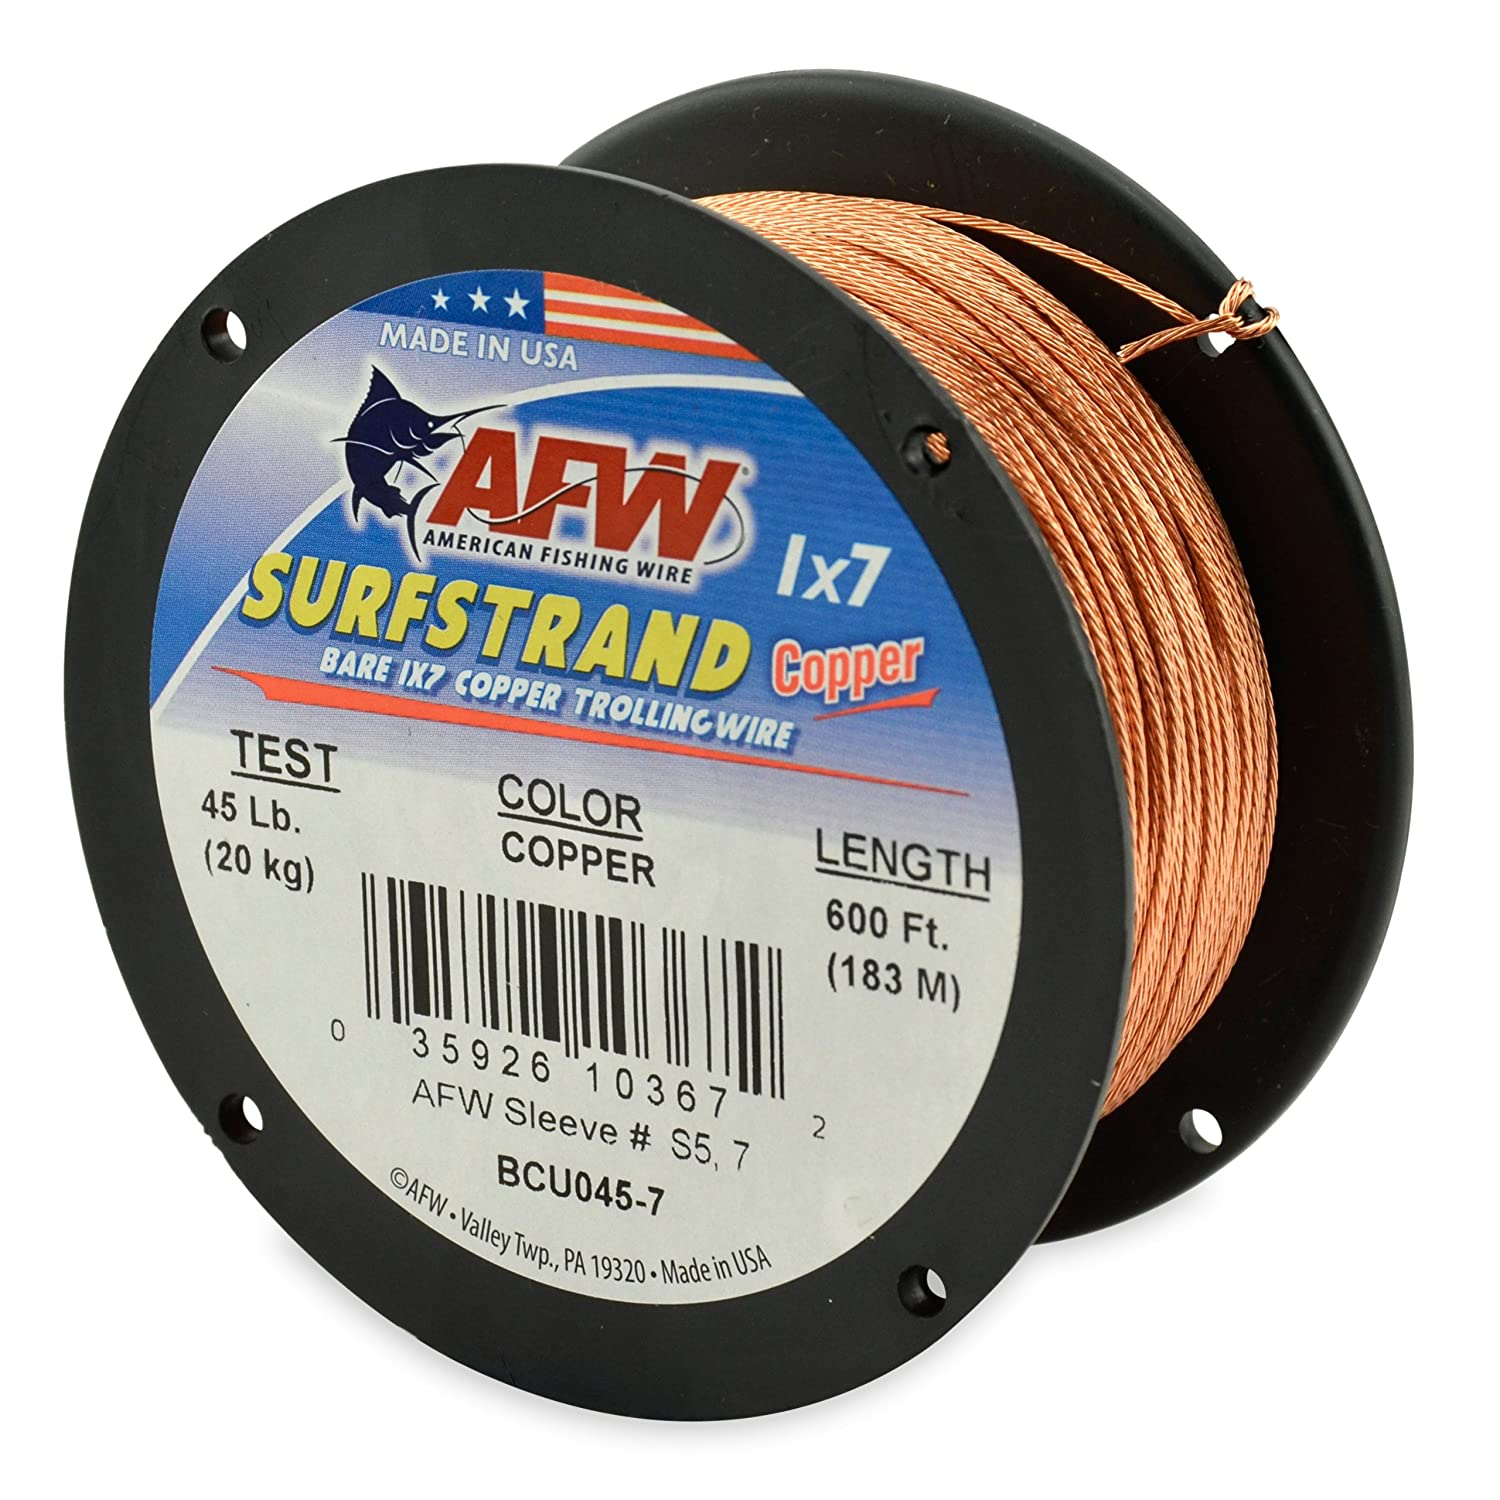 Amazon.com : American Fishing Wire Surfstrand Copper 1x7 Bare ...